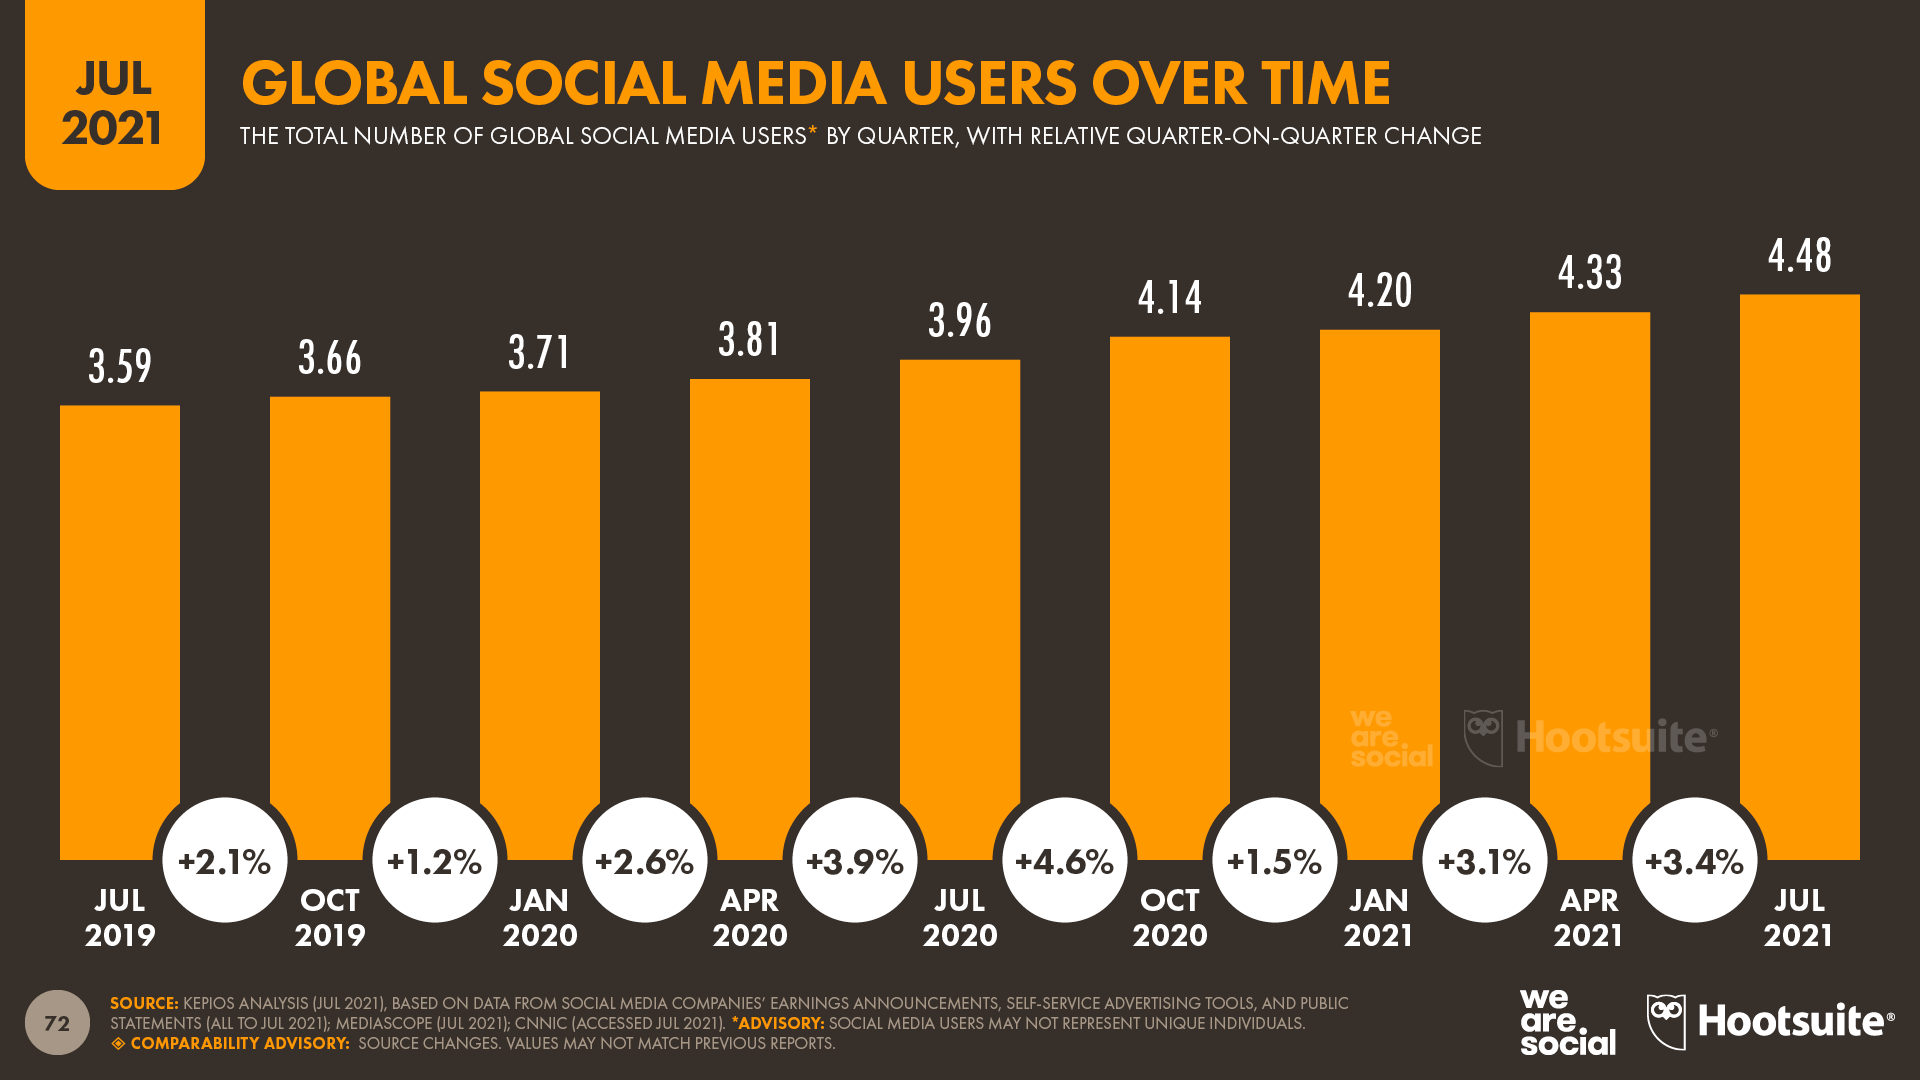 chart showing global social media users over time as of July 2021